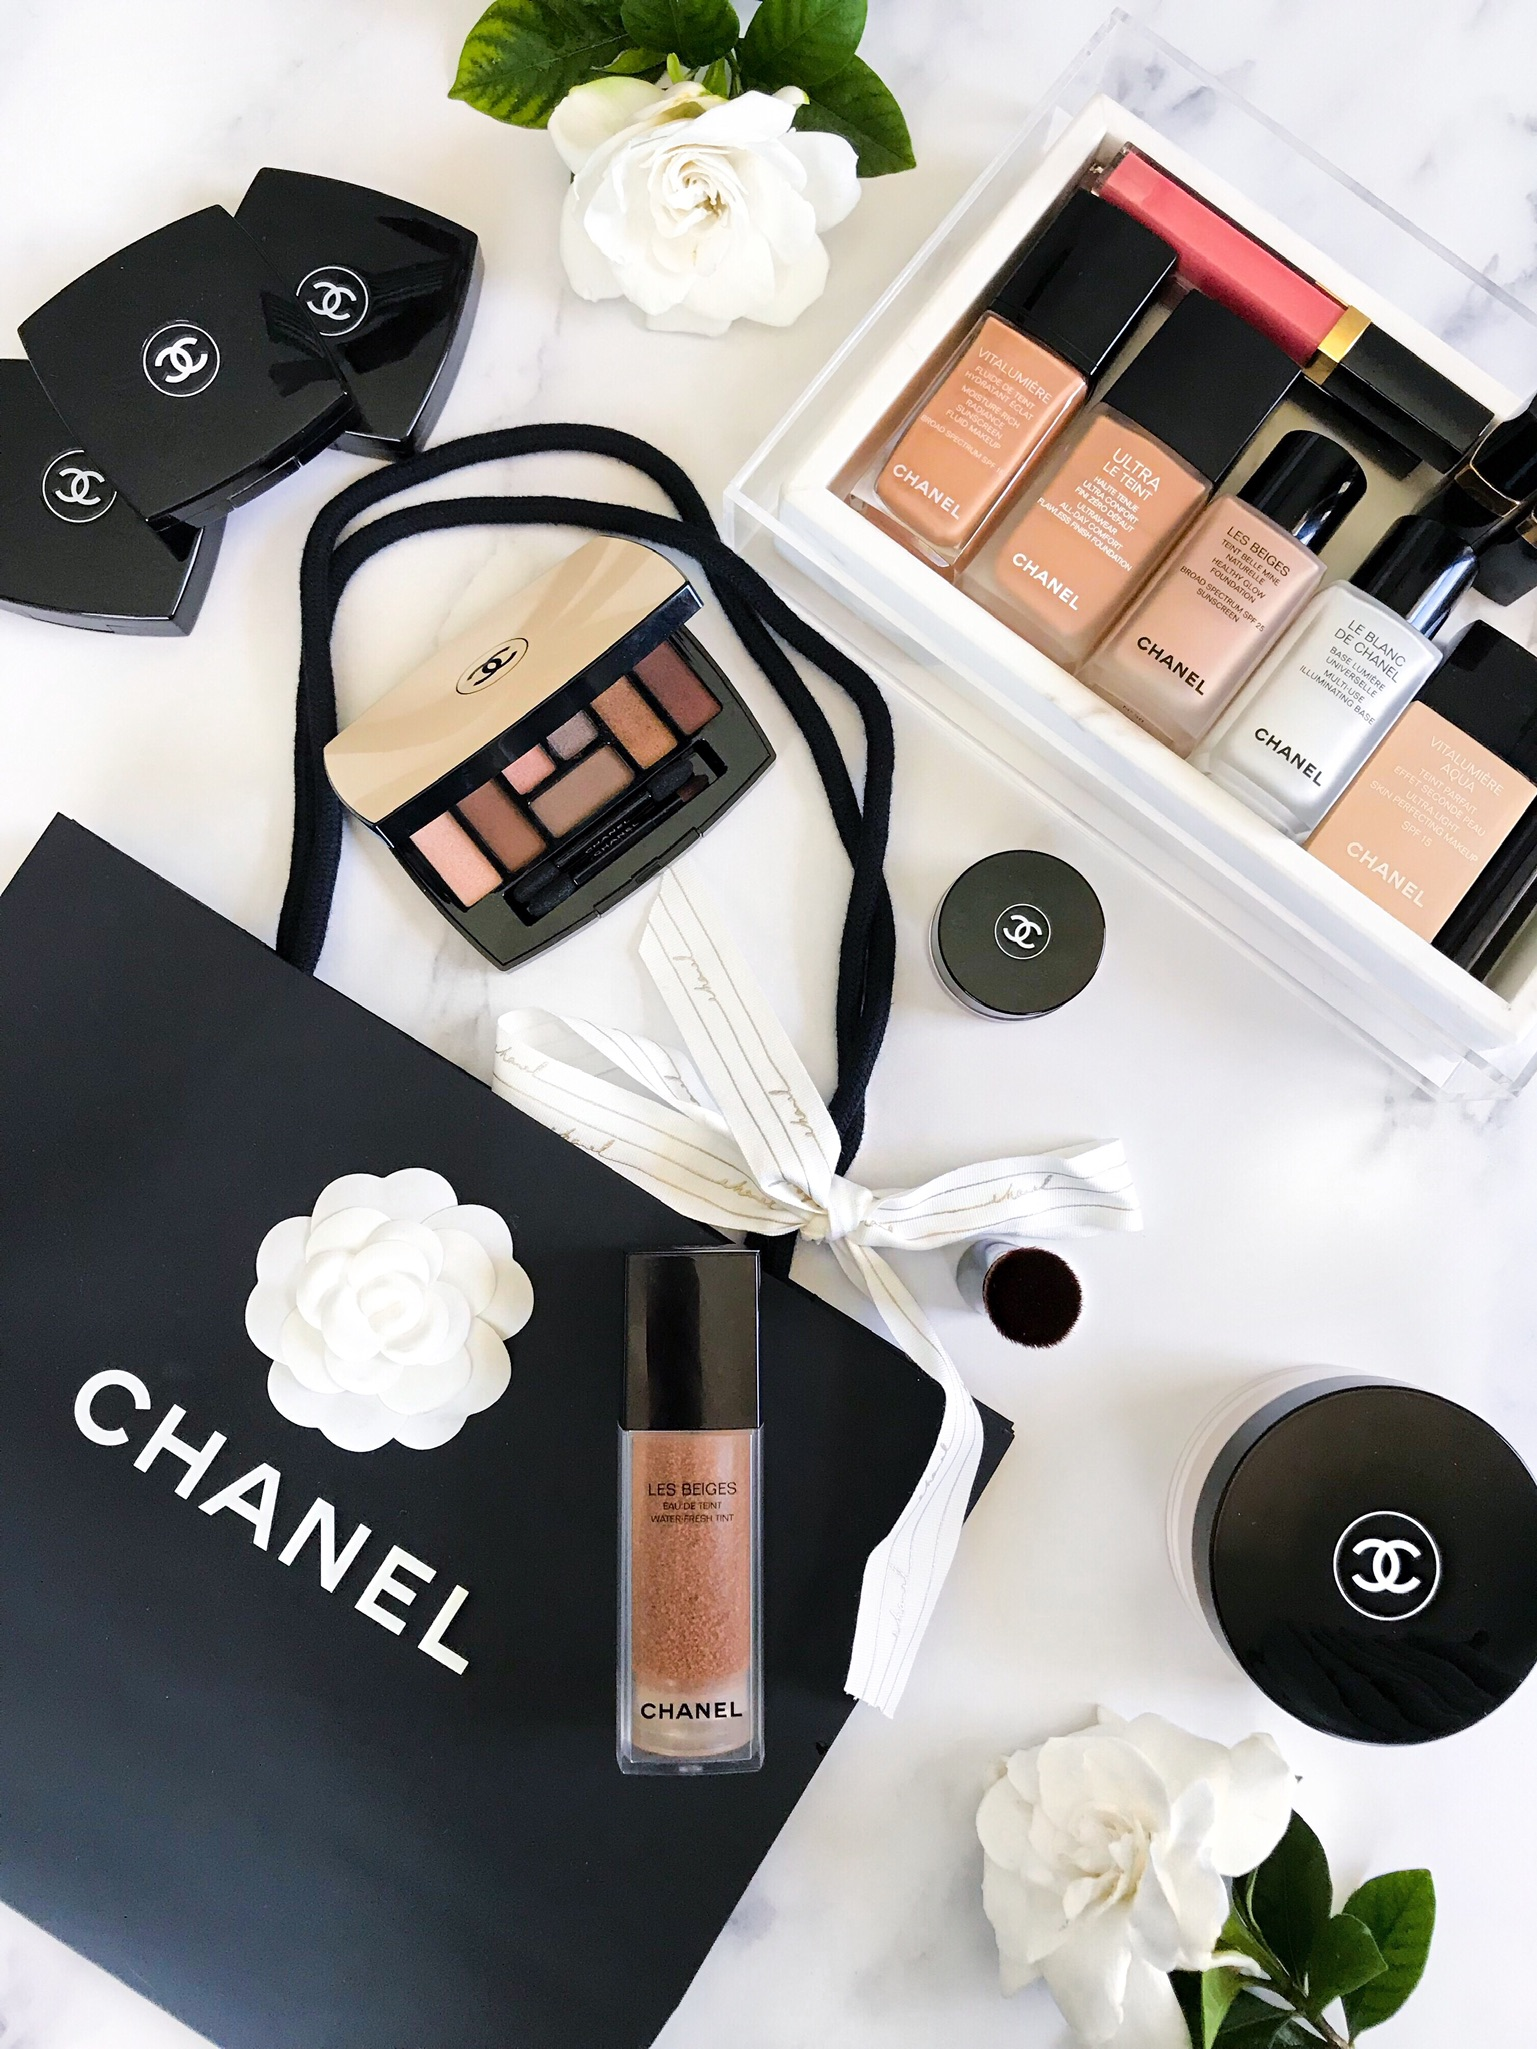 5937a1d192d8 Below is my review of the NEW Chanel Les Beiges Water-Fresh Tint. You can  find my review of the eyeshadow palette Chanel Les Beige Natural Eyeshadow  Palette ...